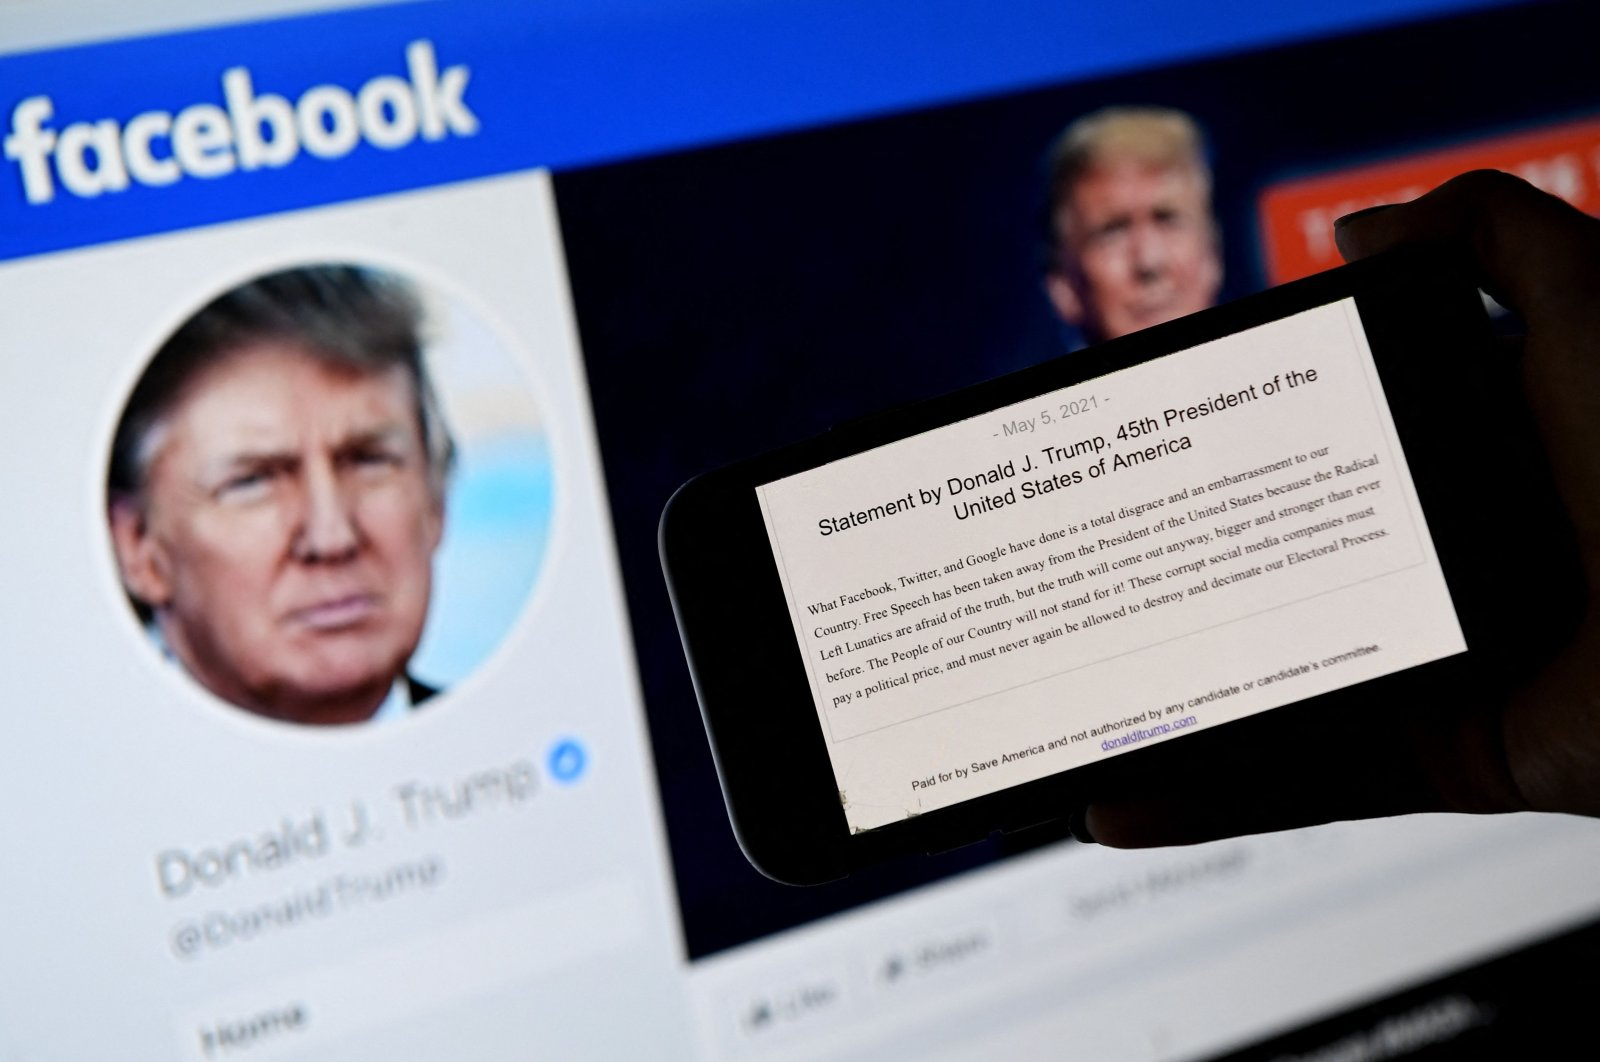 A phone screen displays the statement of former U.S. President Donald Trump in front of his Facebook page, in this photo illustration, Arlington, Virginia, U.S., May 5, 2021. (AFP Photo)